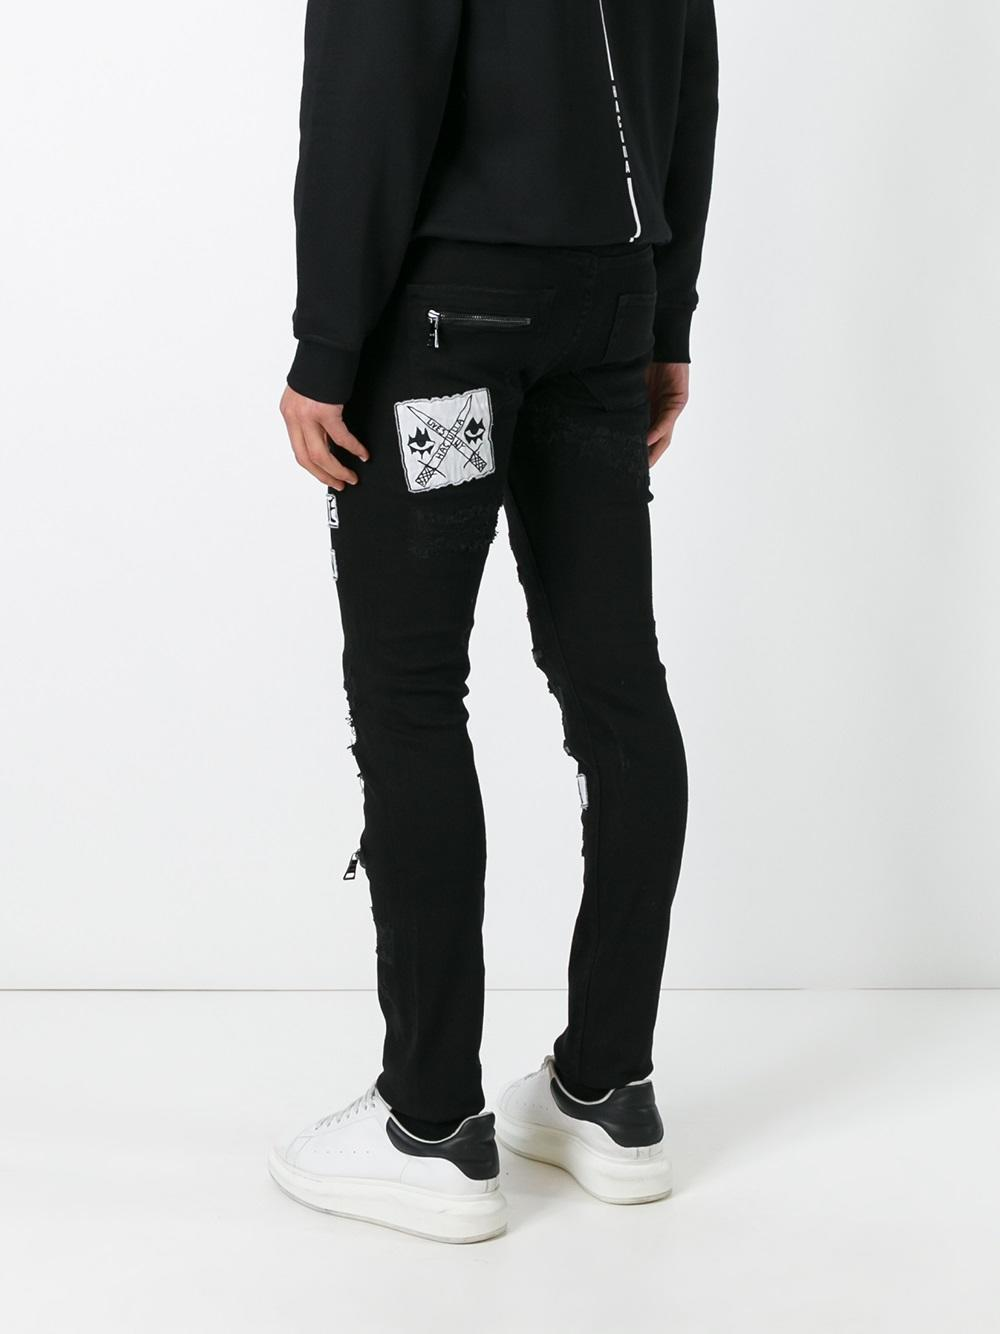 Geniue Stockist Cheap Online Free Shipping Cheap destroyed effect skinny jeans - Black Haculla For Nice For Sale 4Lllz